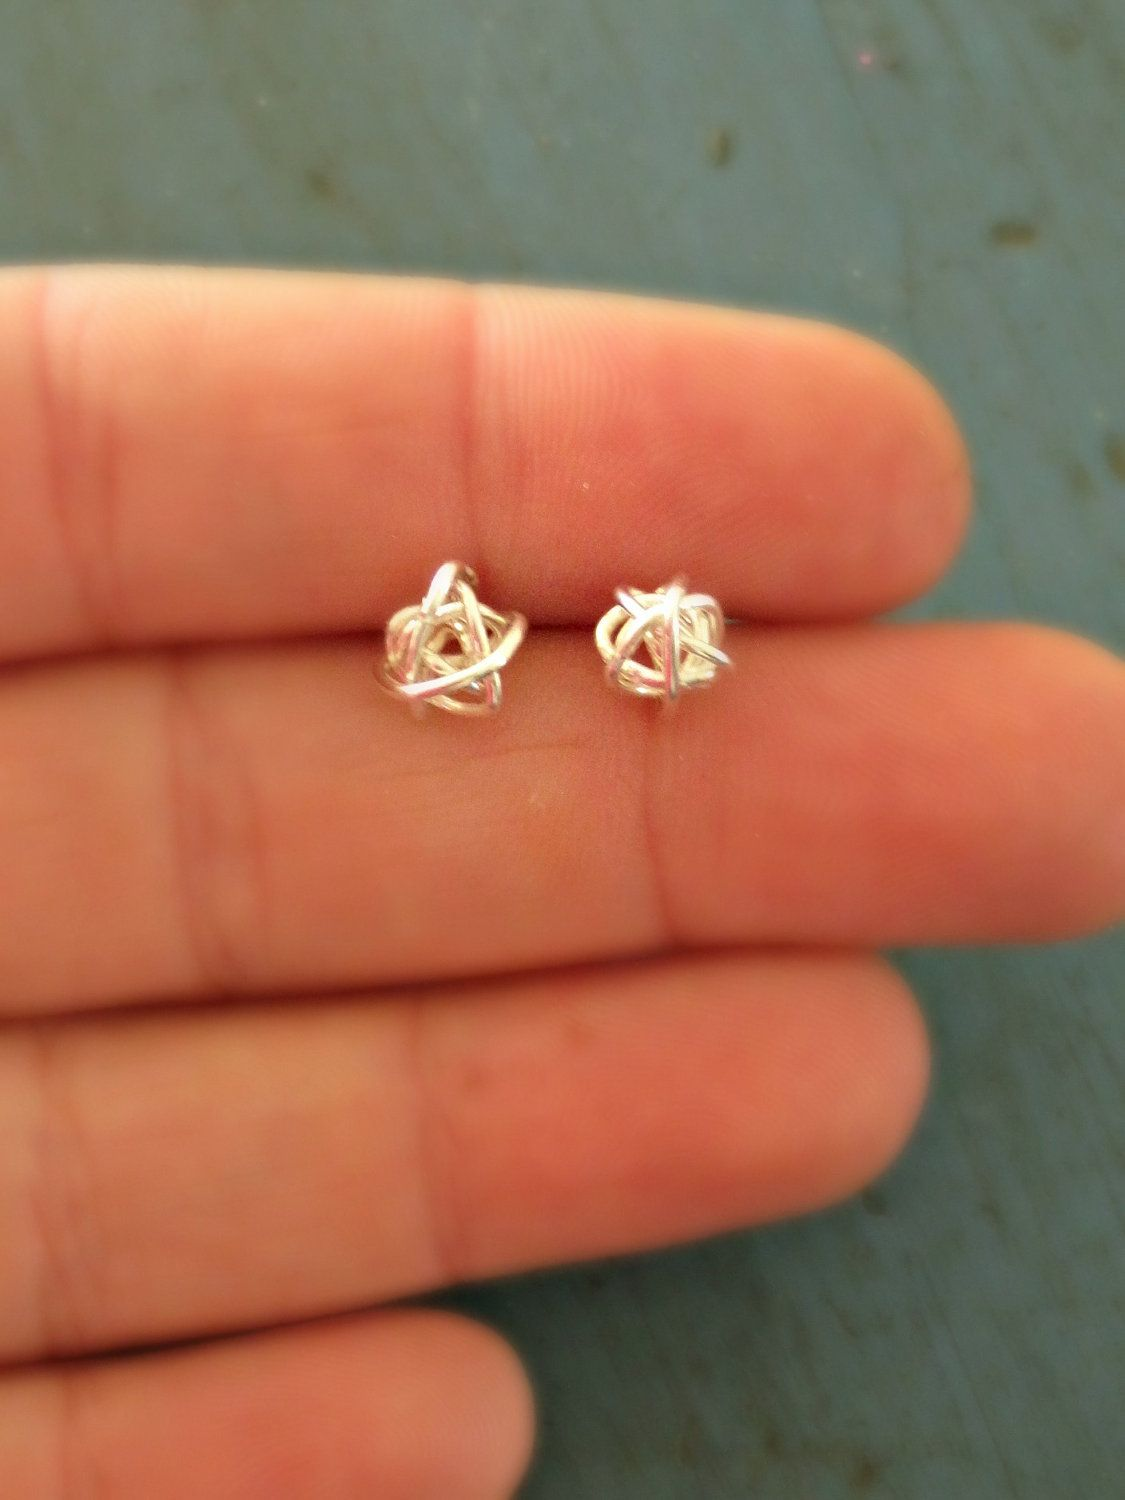 Sterling Silver Love Knot Earrings Beautiful Mess Tiny Stud Bridesmaid Gifts Shower 17 50 Via Etsy